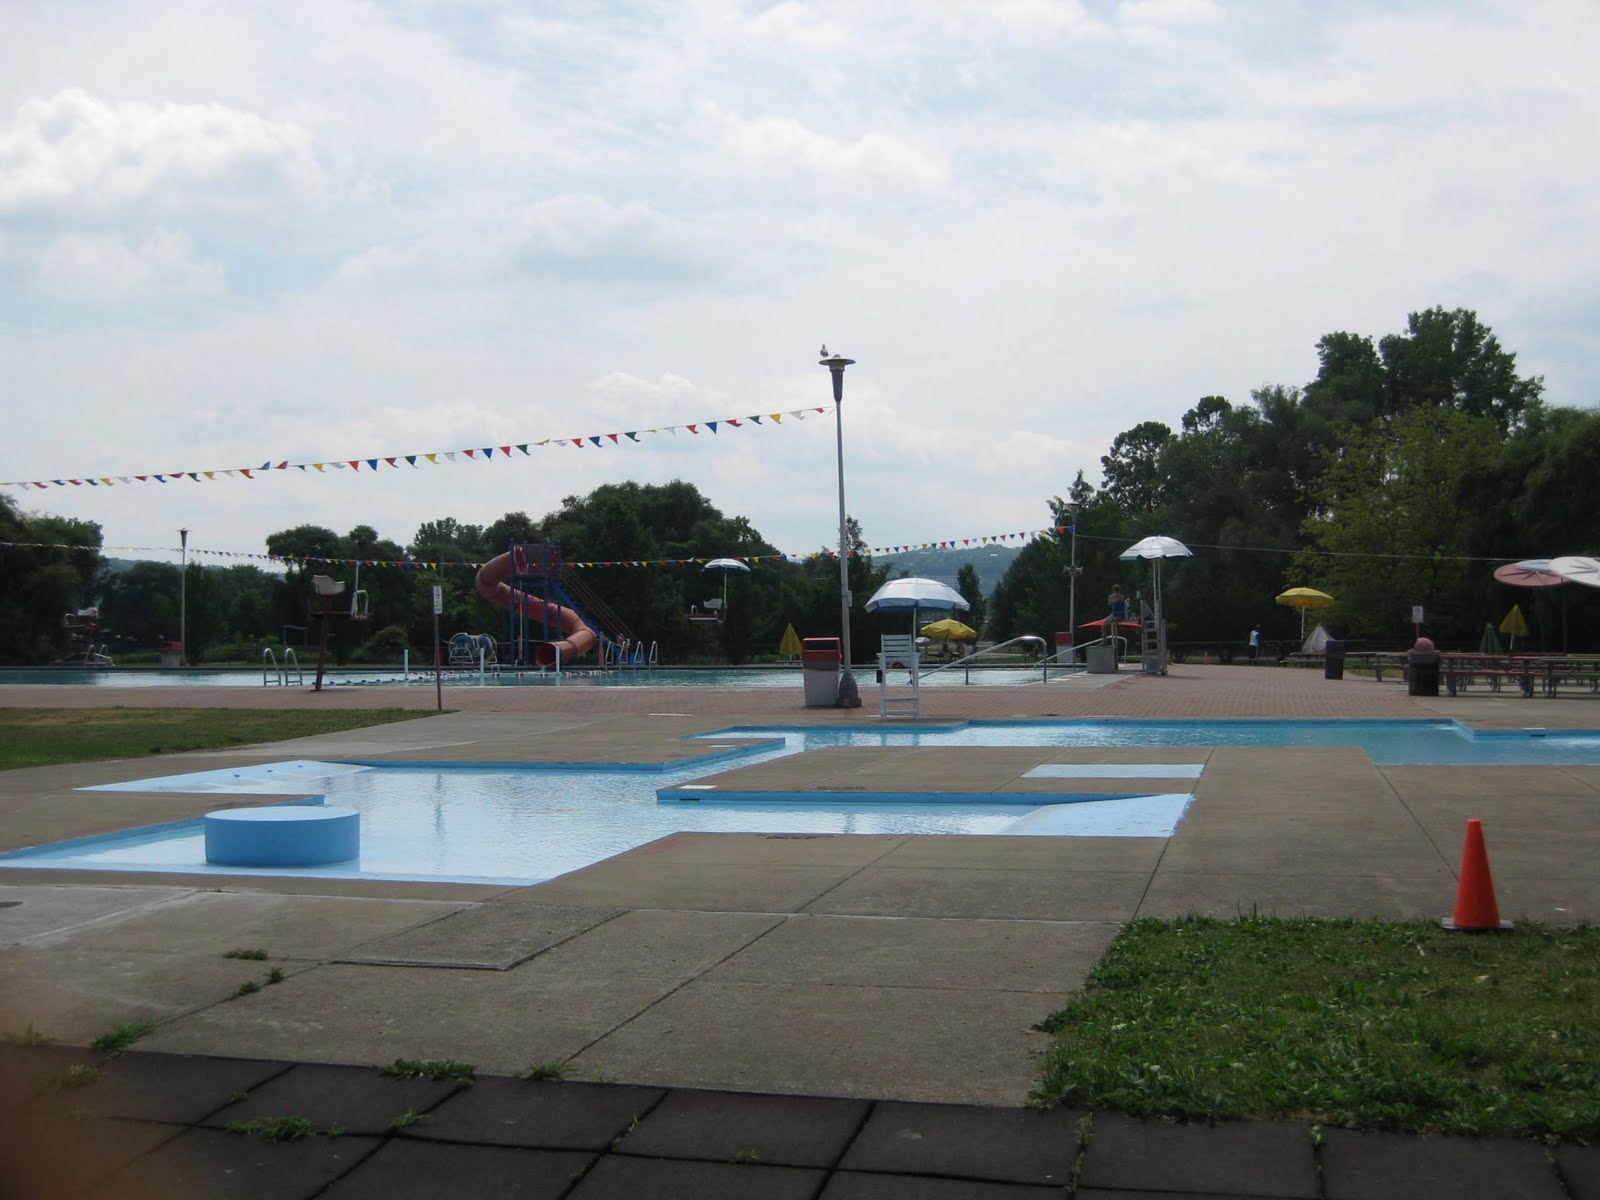 fithaca - Fitness and Recreation in Ithaca: Outdoor swimming in Ithaca